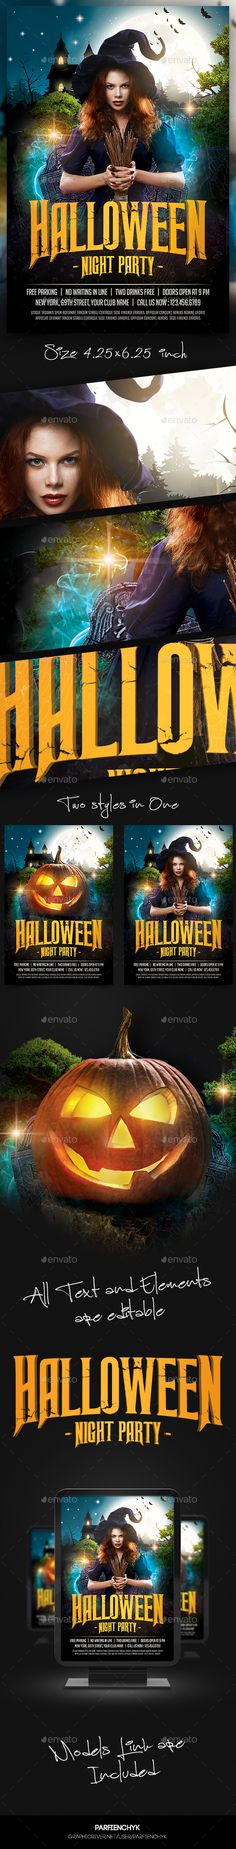 Halloween Party Flyer Template PSD #design Download: http://graphicriver.net/item/halloween-party-flyer-template/13022689?ref=ksioks